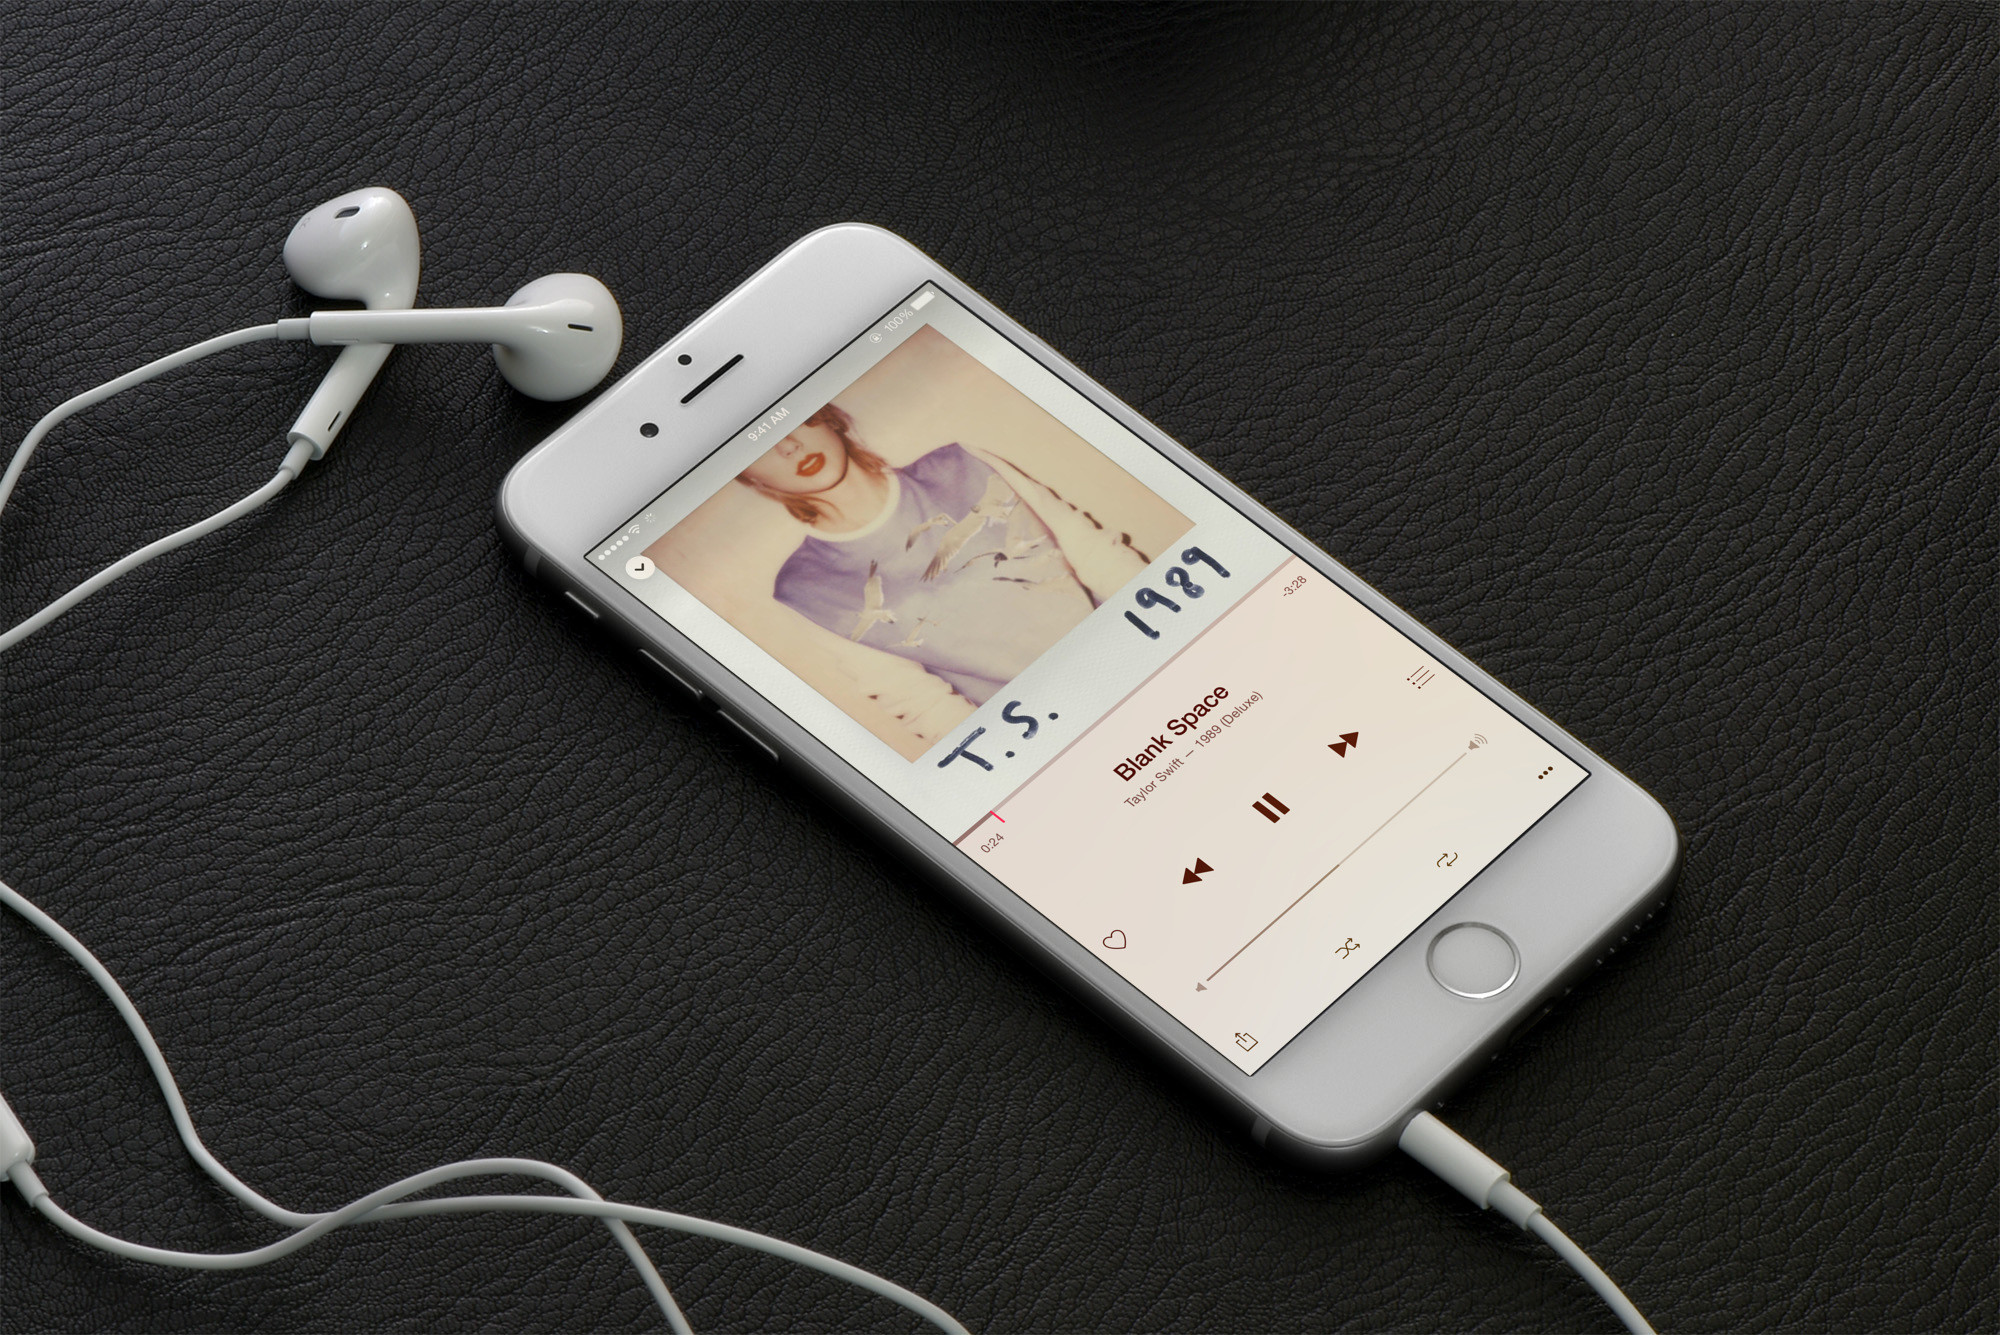 Apple Music reportedly reaches 10 million paying subscribers